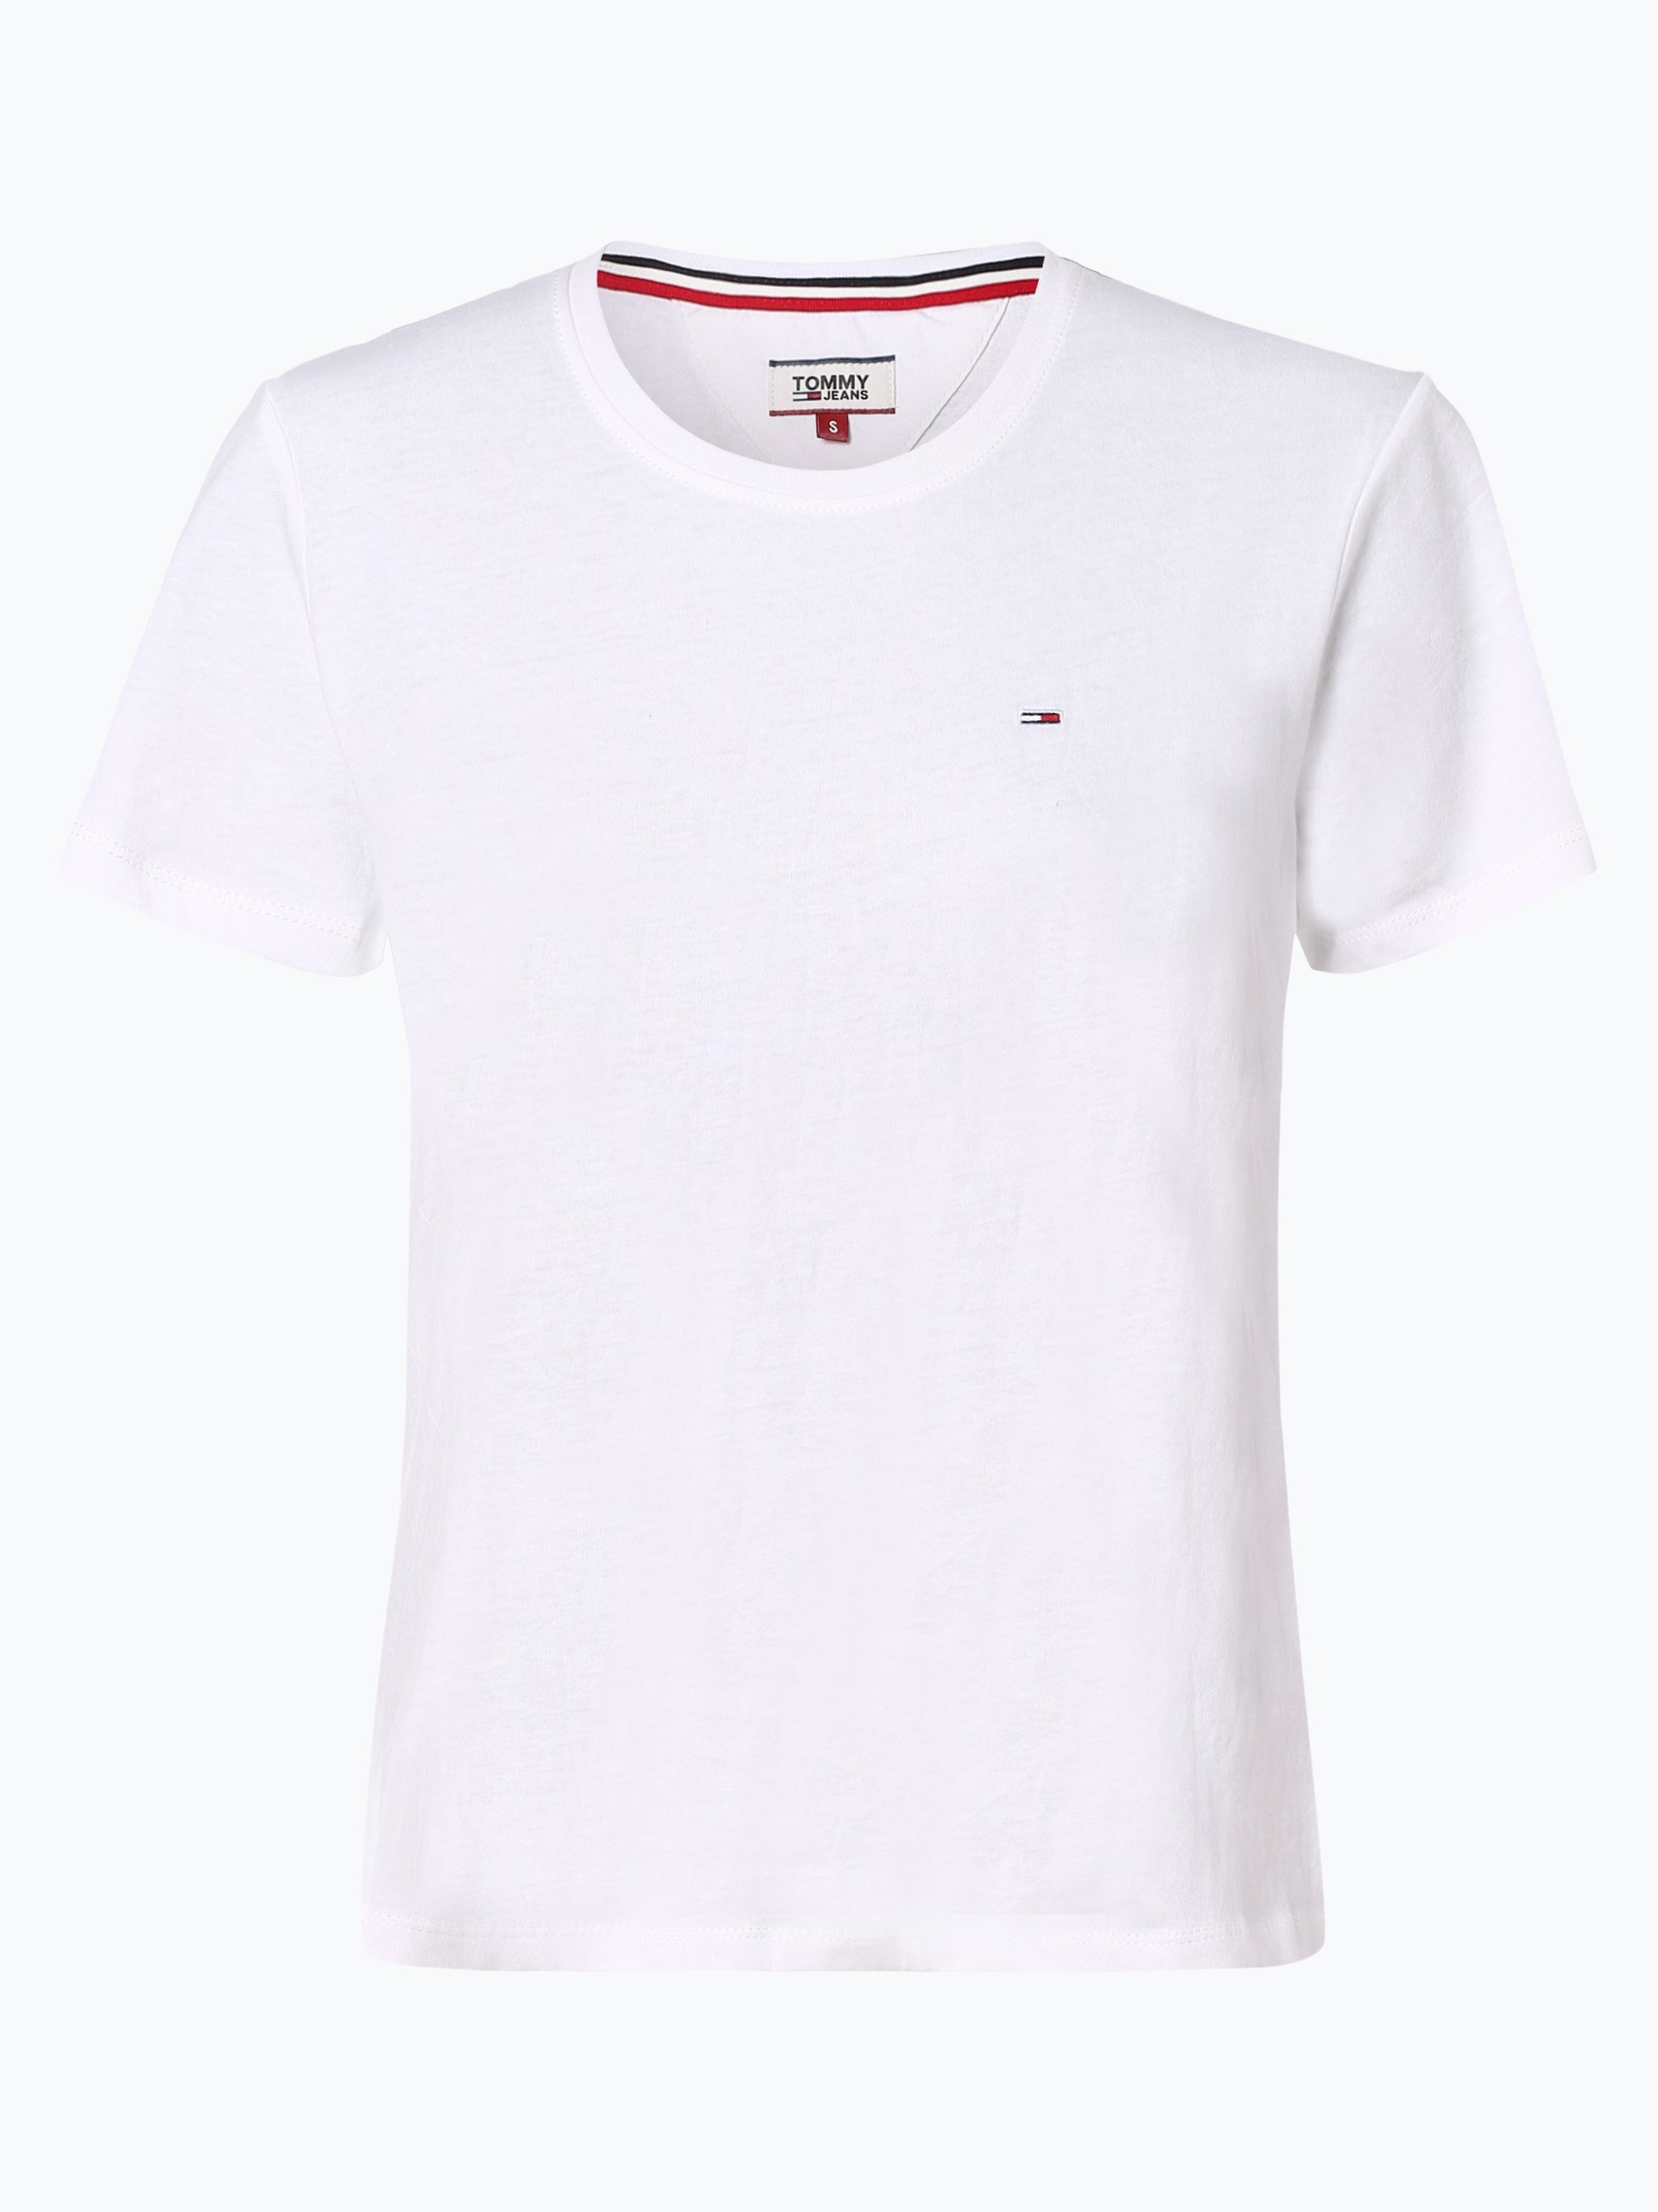 Tommy Jeans Damen T-Shirt